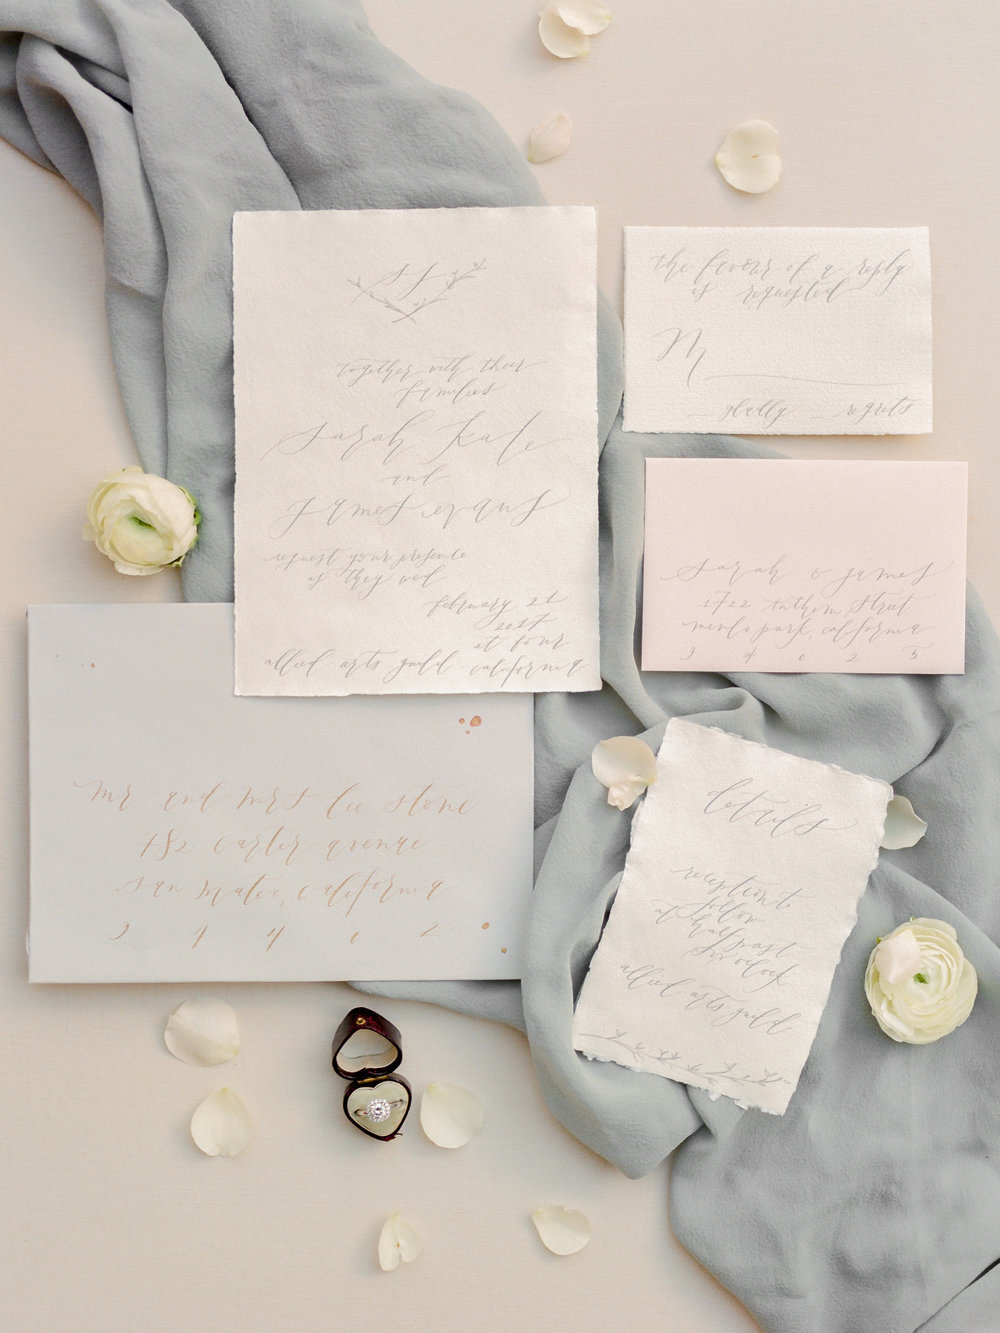 Secret Garden Wedding Inspiration with Golden Light Design & styling by Natalie Choi Events. Photography by Kate Anfinson. Florals by Bloomwell & Co. Paper goods by Kelsey Malie Calligraphy.